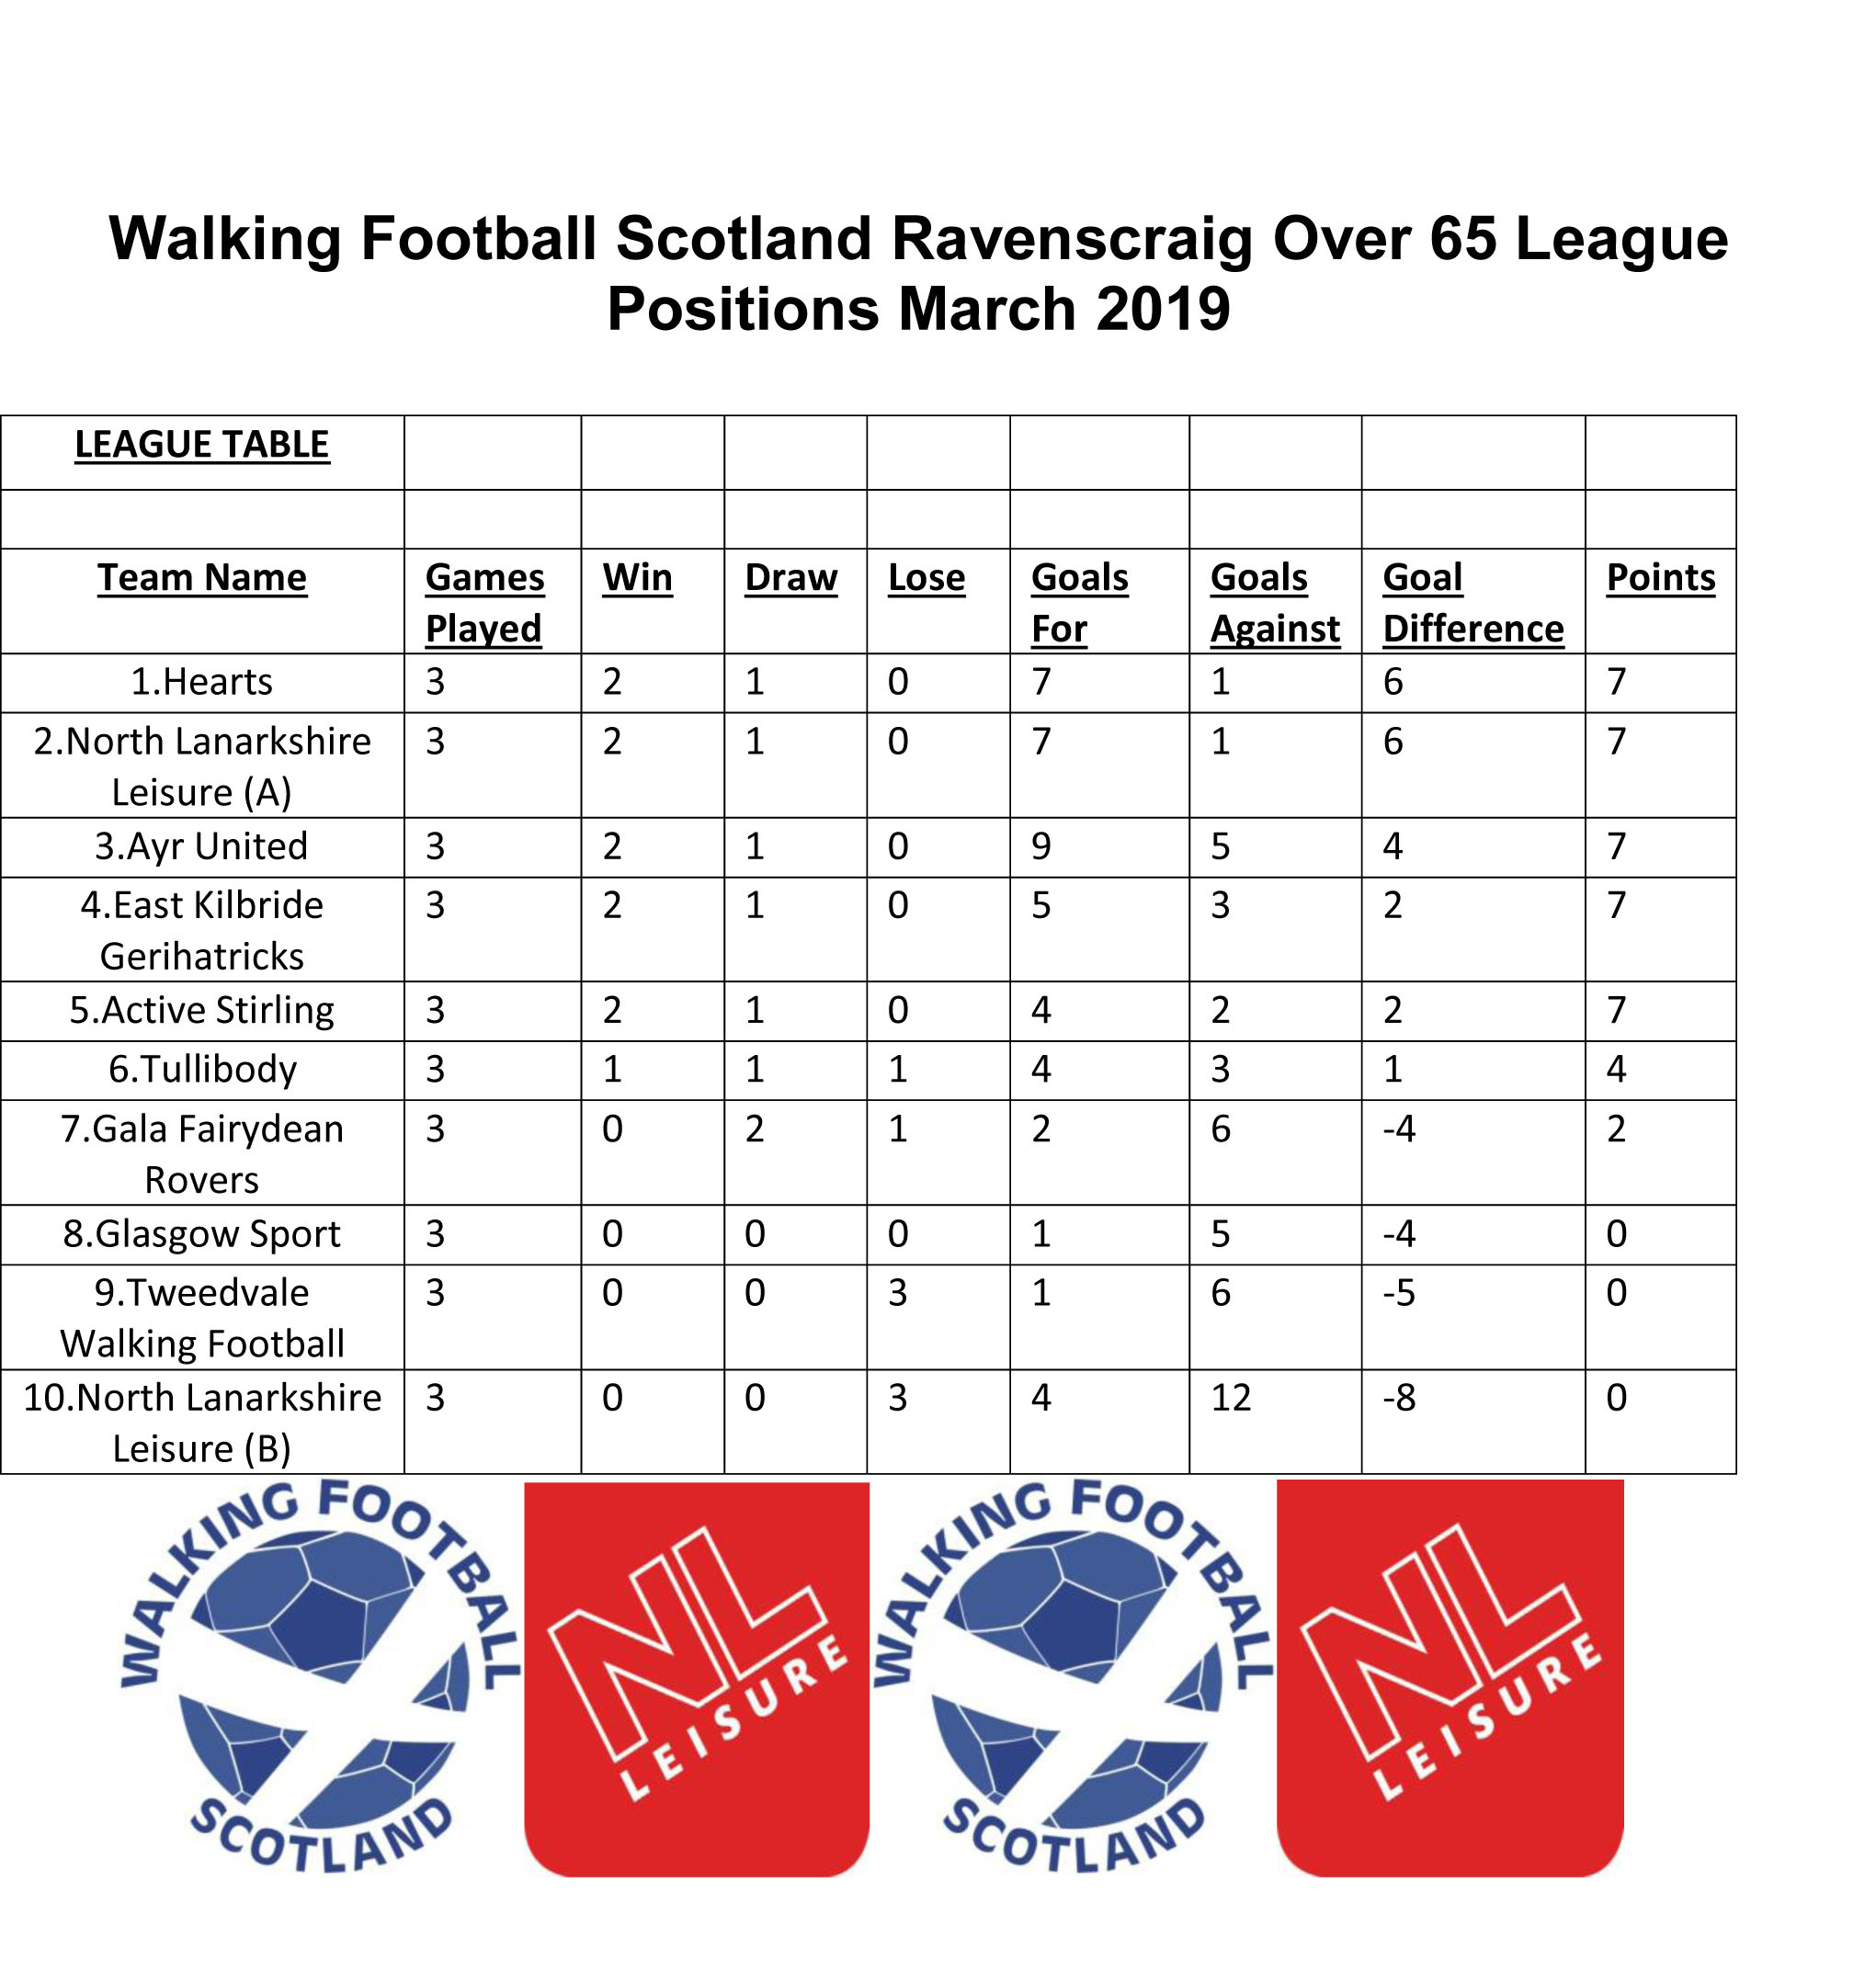 Walking Football Scotland Ravenscraig Over 65 League Positions March 2019.jpg